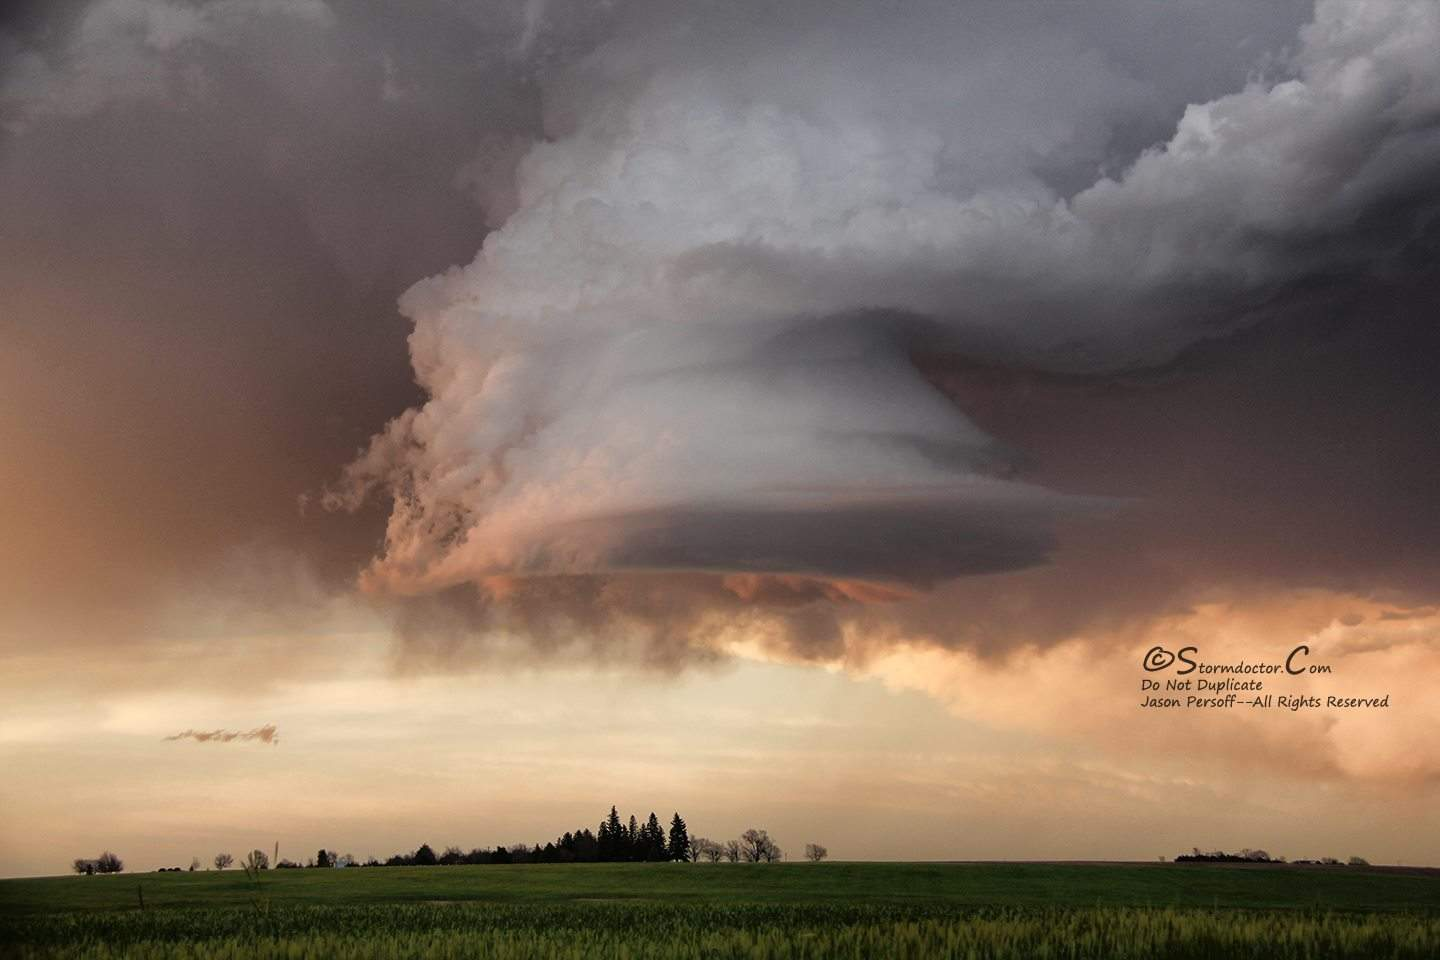 Probably the most fun sunset I've ever witnessed spawned entirely by this little guy here: a persistent mesocyclone for hours slowly trotting its way over the skies near Sydney, NE, on 6/2/2015. Mothership incoming